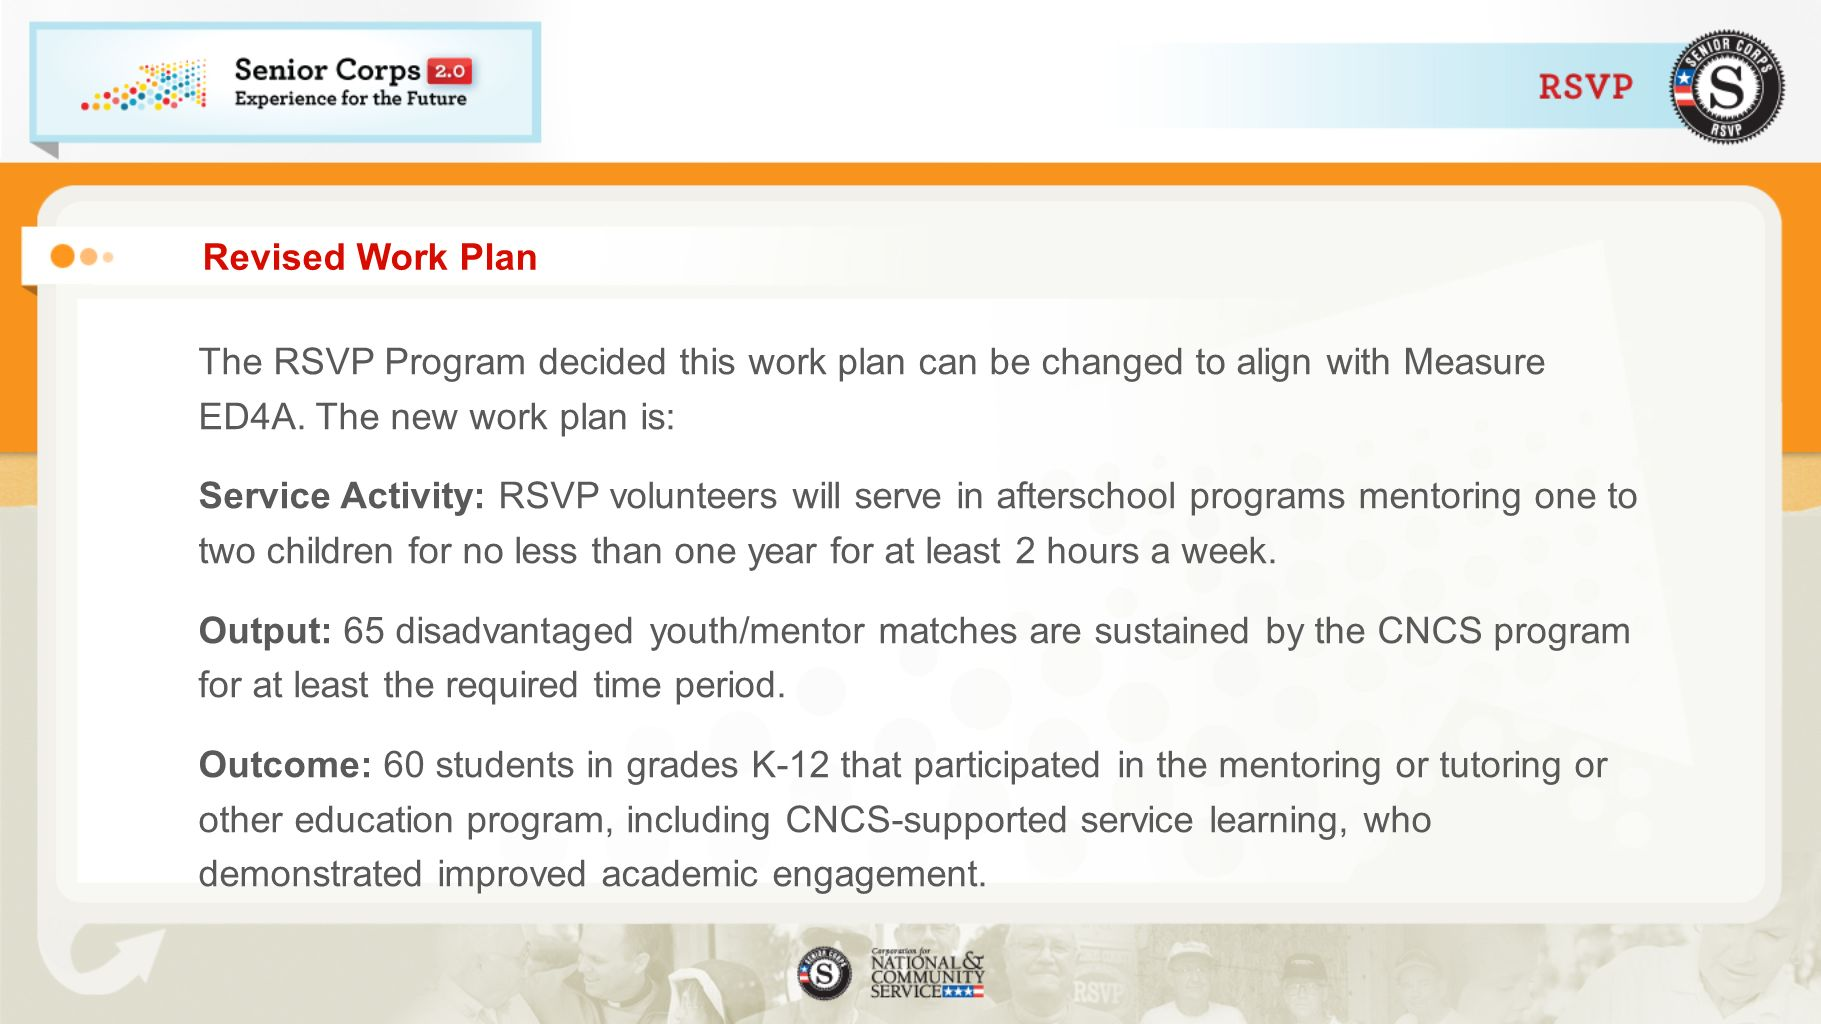 Revised Work Plan The RSVP Program decided this work plan can be changed to align with Measure ED4A. The new work plan is: